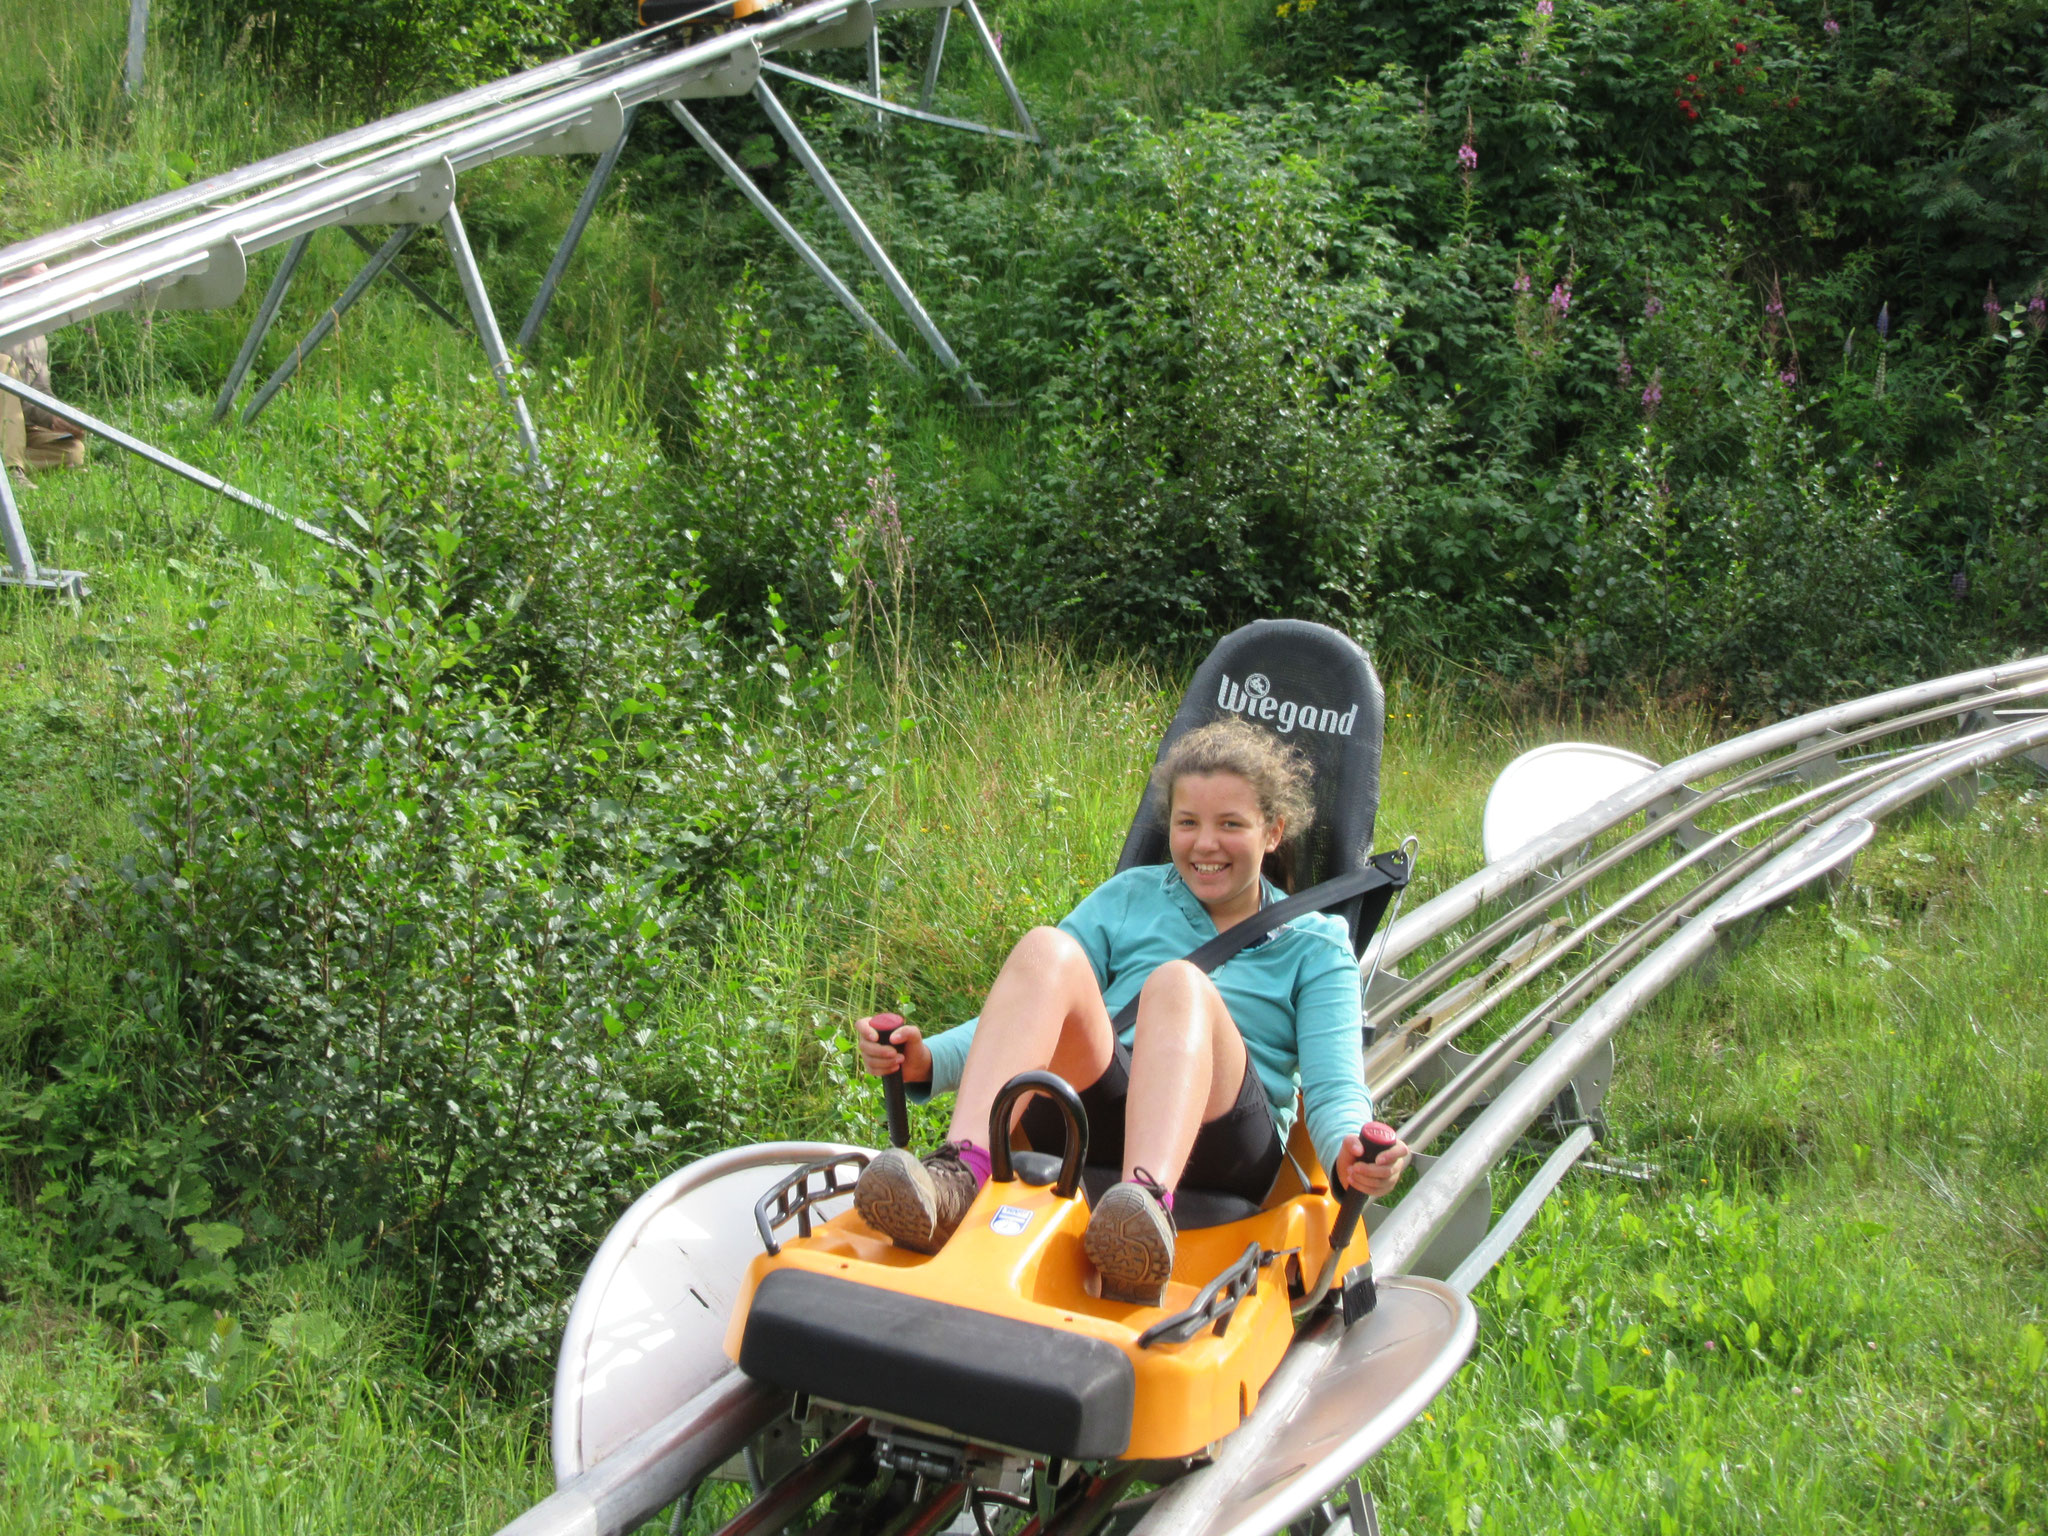 The summer roller-coaster at Rittisberg